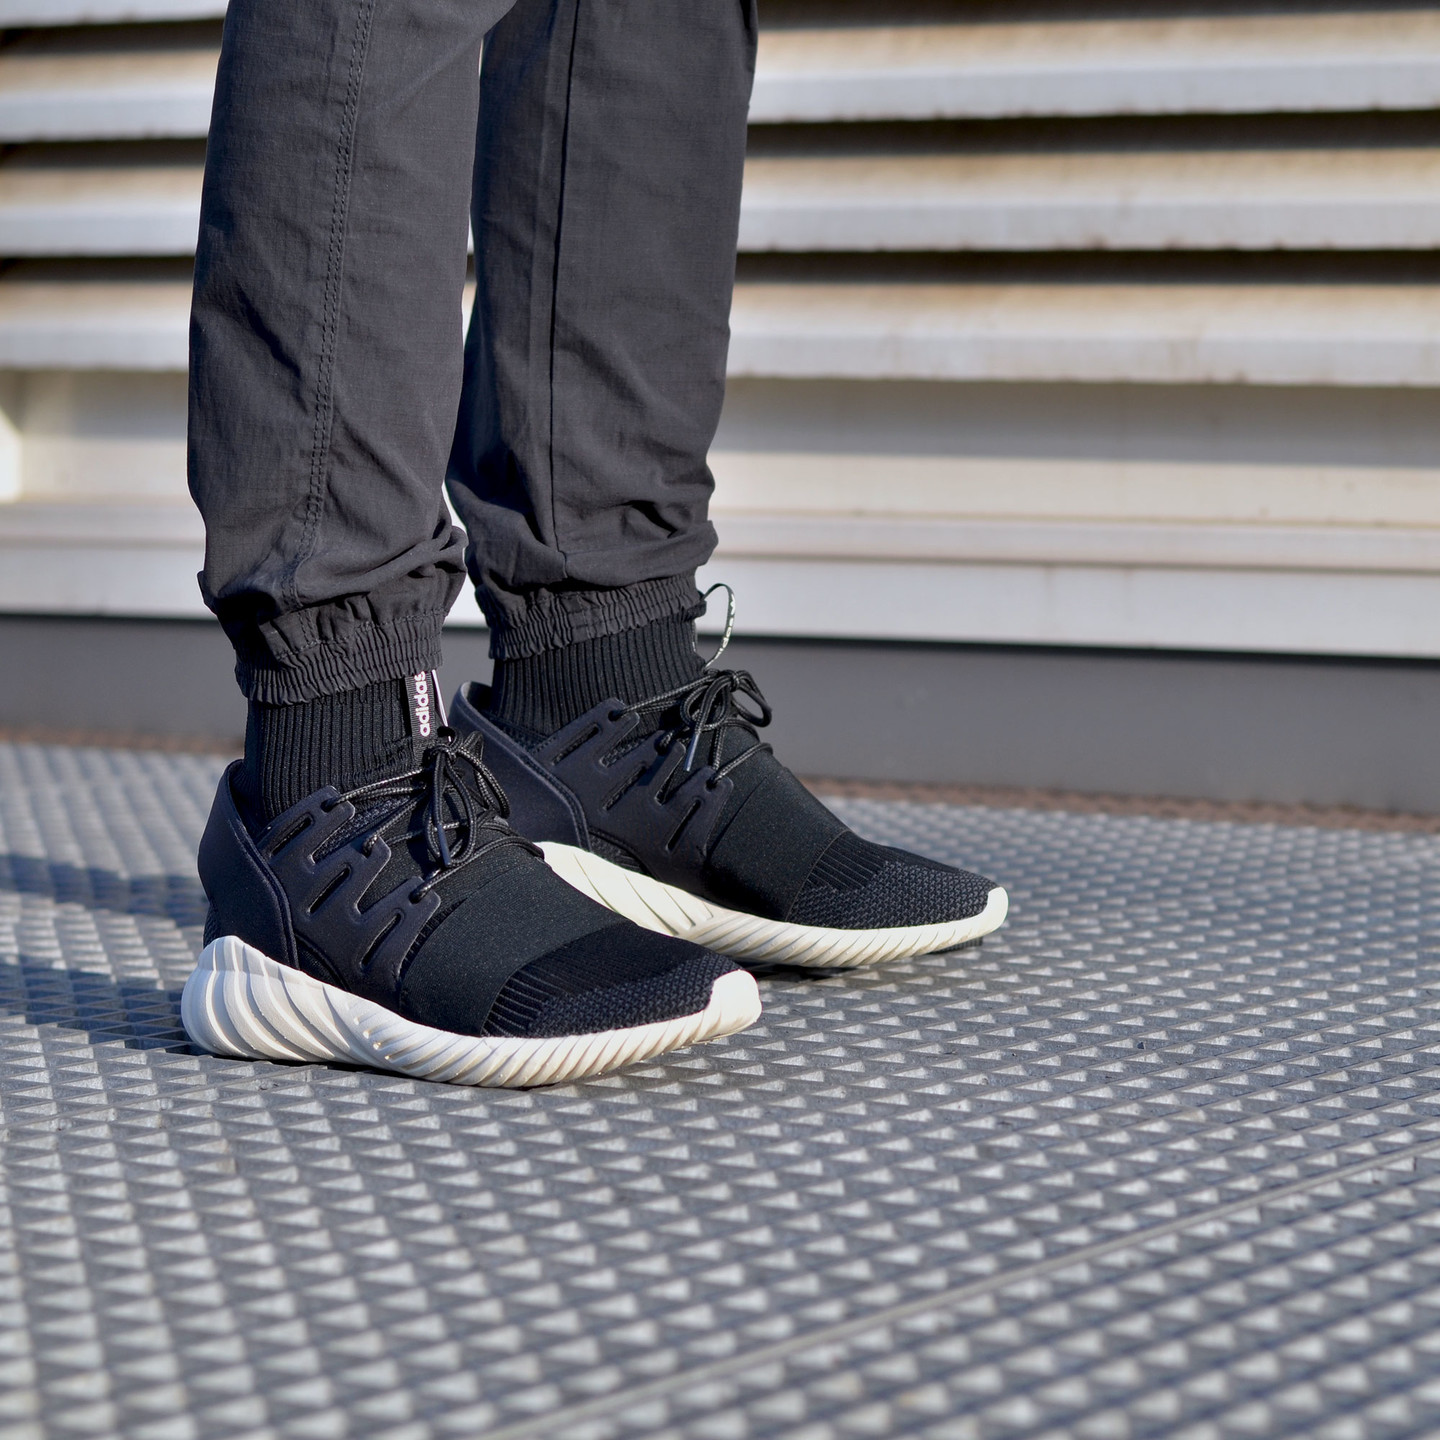 Adidas Tubular Doom Primeknit Black / Cream White S74921-44